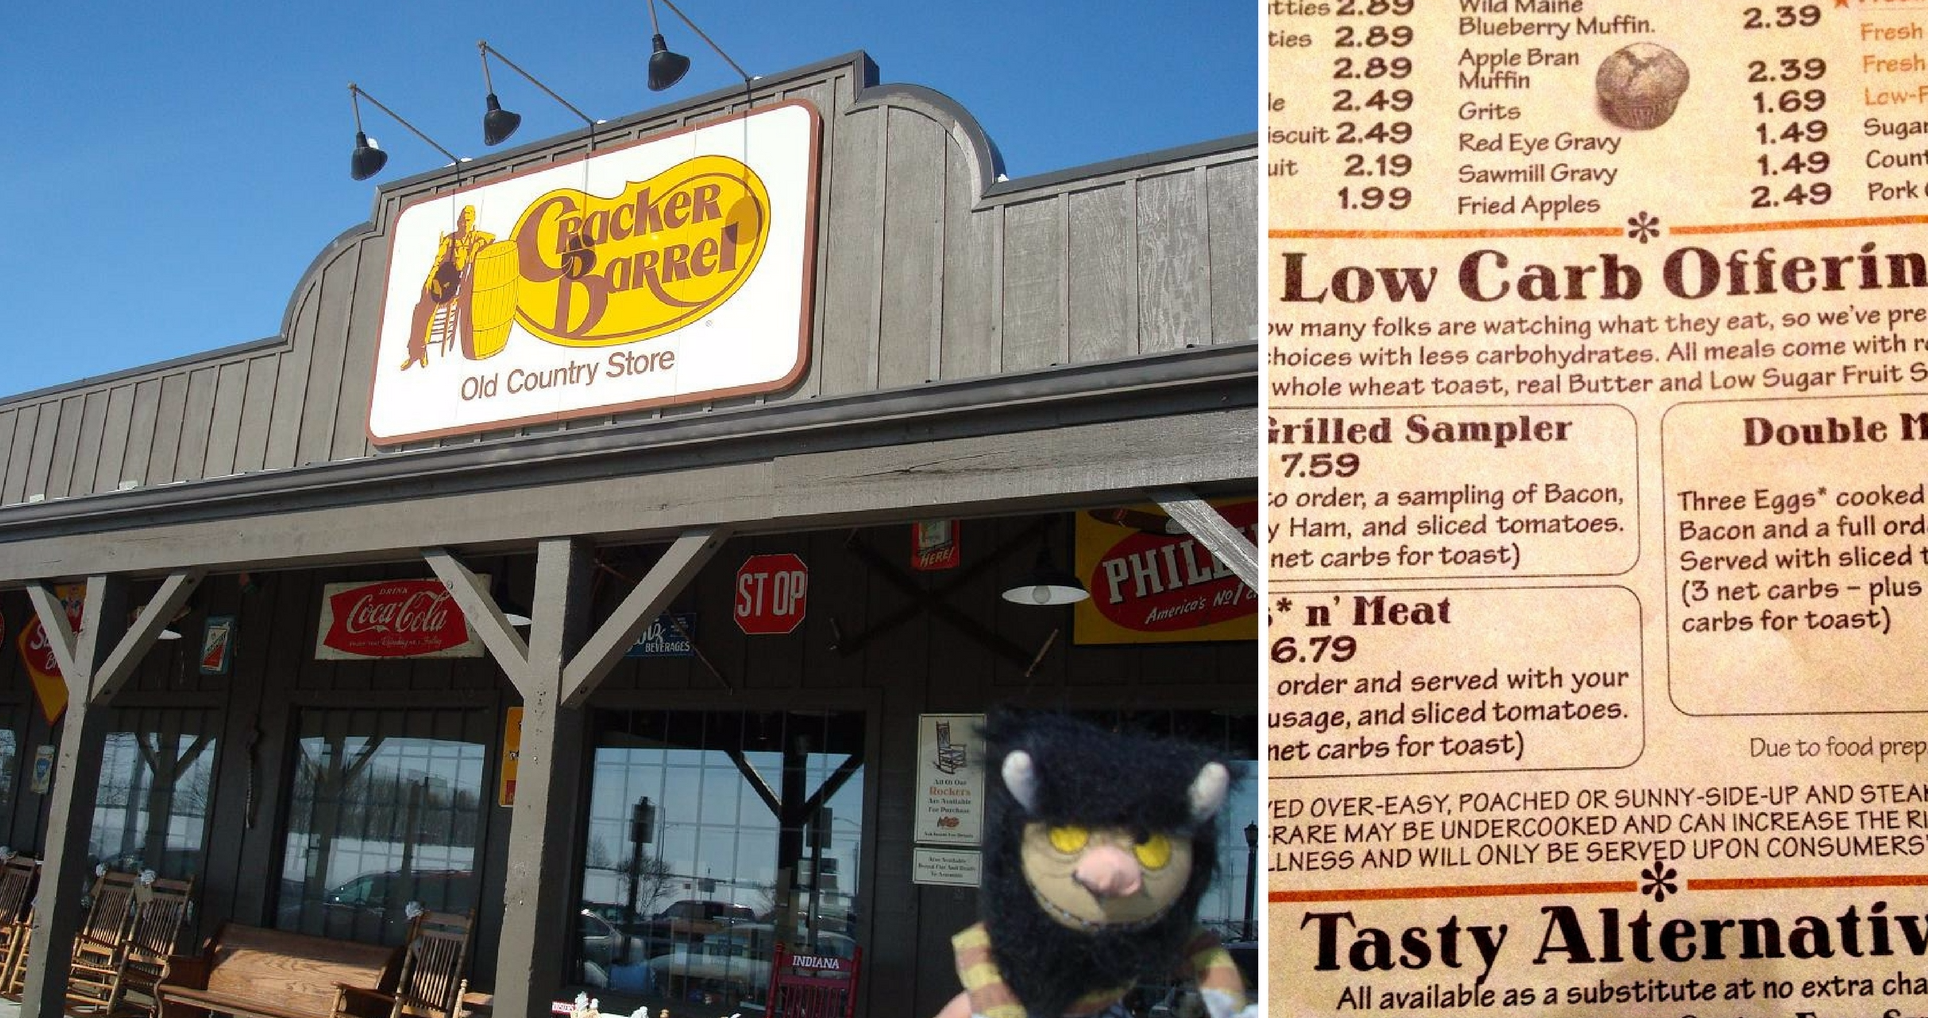 8 Things You Should Never Order From Cracker Barrel